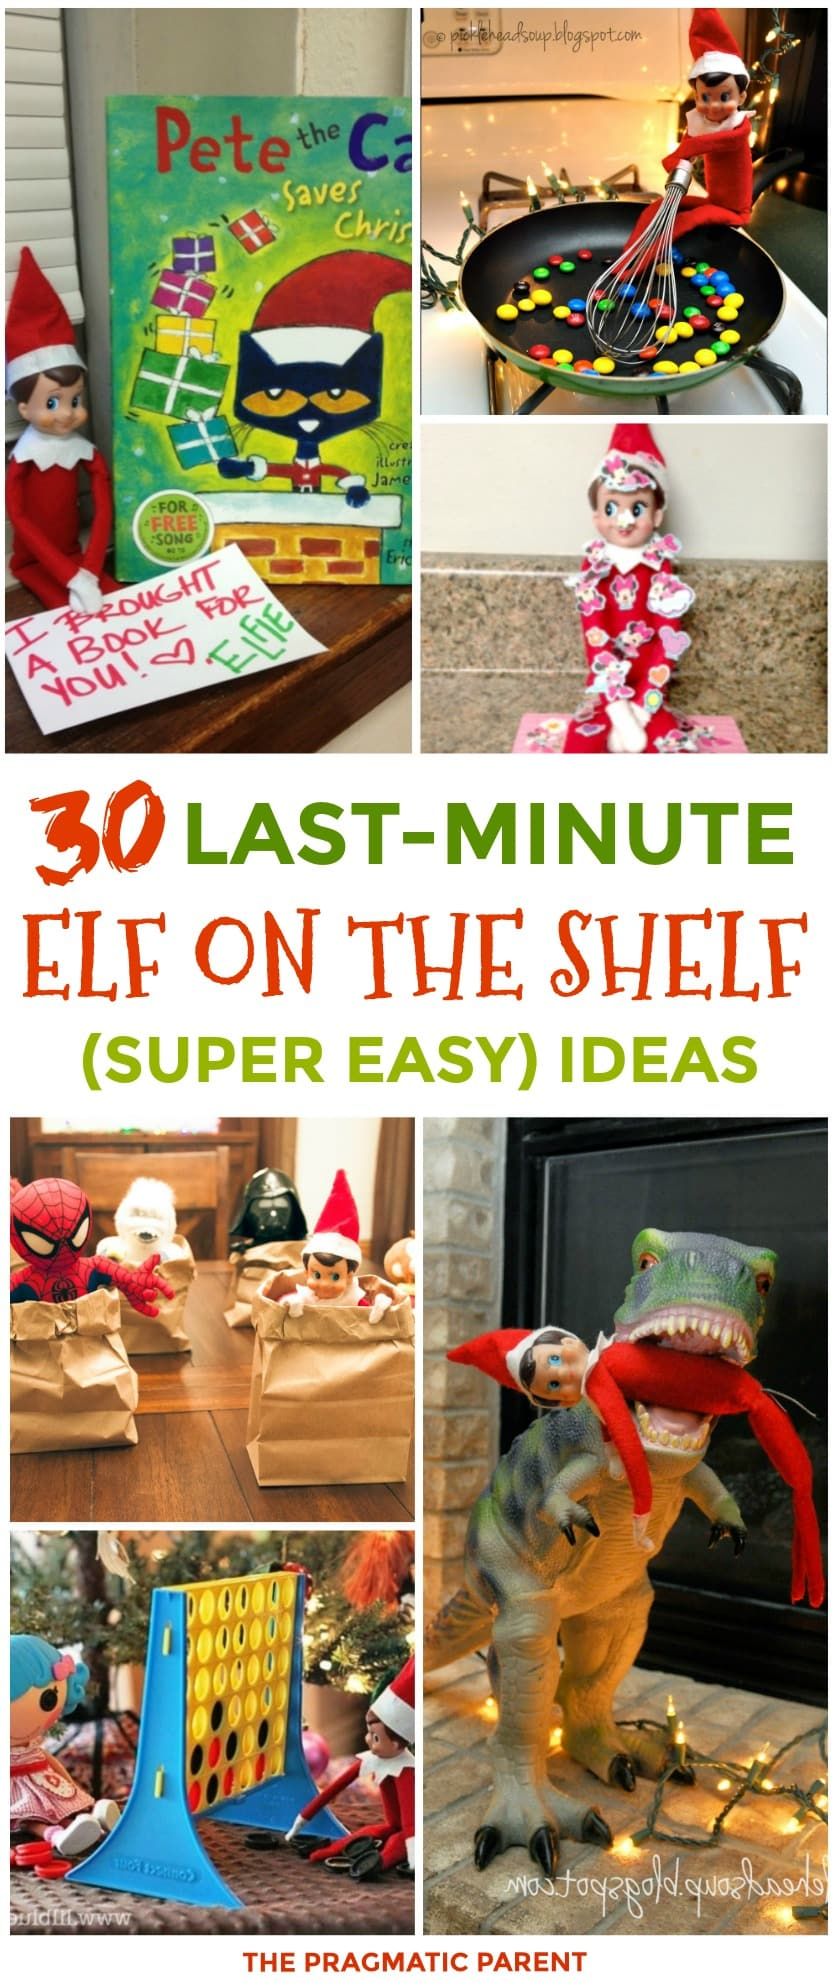 Need a last minute elf on the shelf idea? 30 Quick & Easy Elf on the Shelf Ideas to pull together in 5 minutes. Last-minute elf on the shelf ideas with supplies you already have around your house. #easyelfontheshelf #easyelfideas #easyelfontheshelfideas